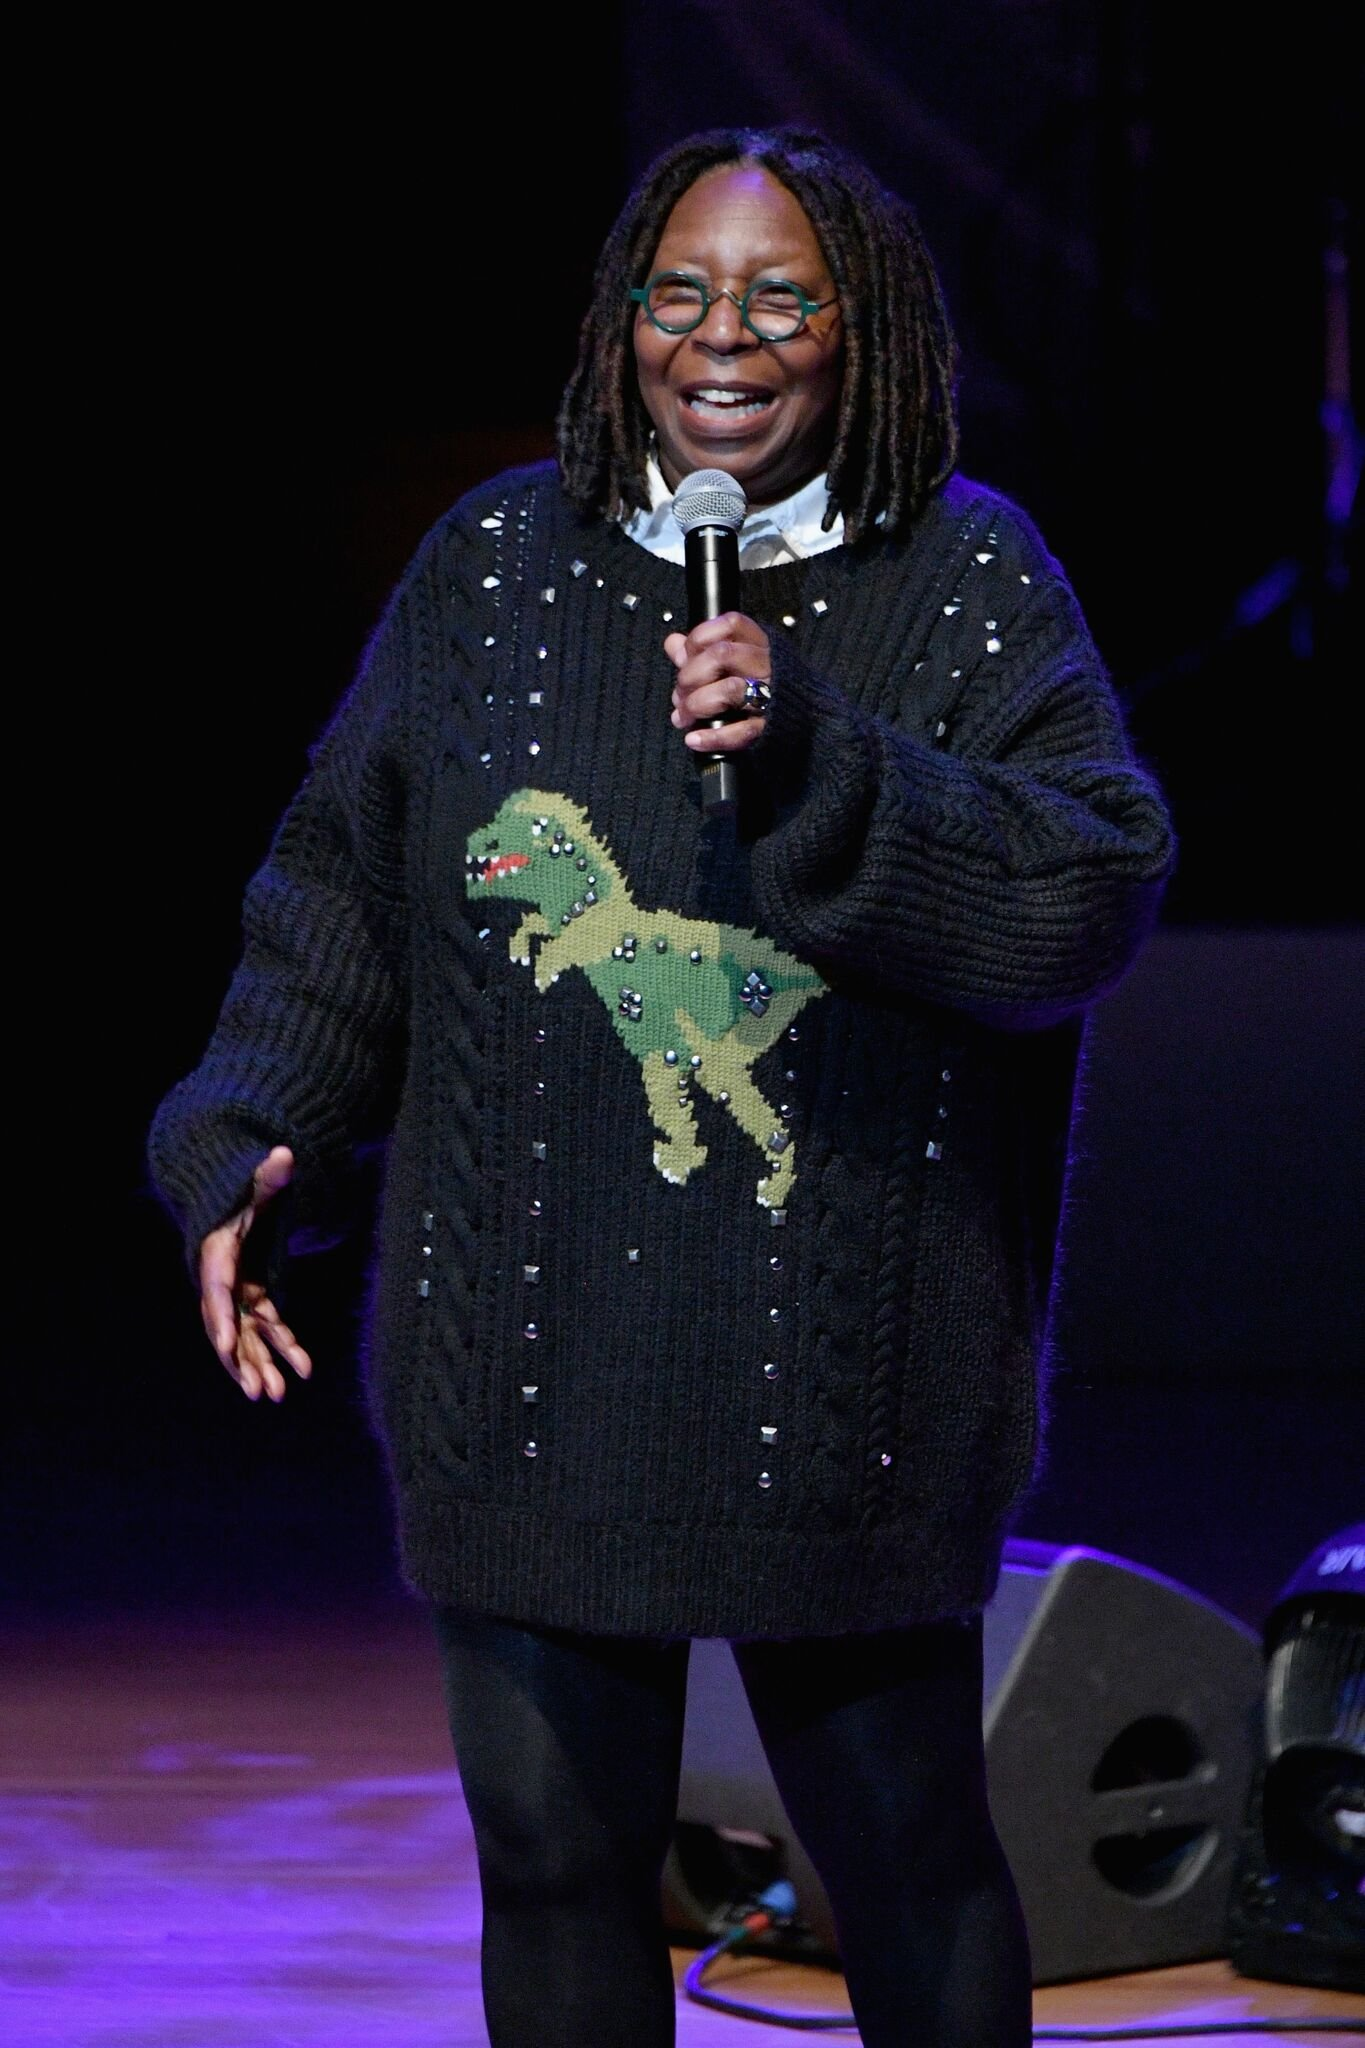 Whoopi Goldberg at the Lincoln Center Fashion Gala | Getty Images